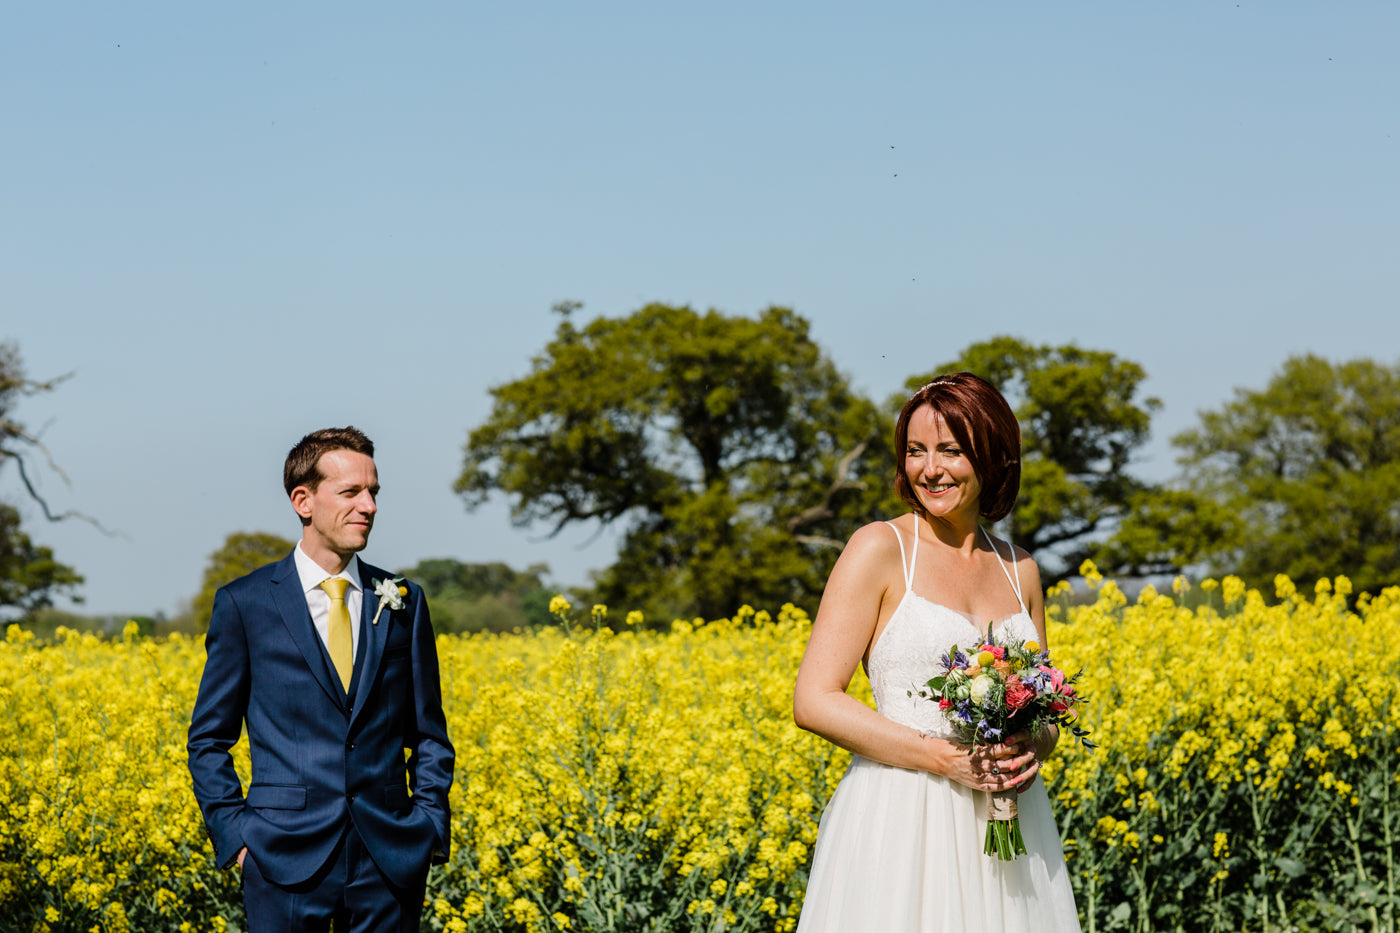 Chequers Inn at Woolsthorpe Weddings